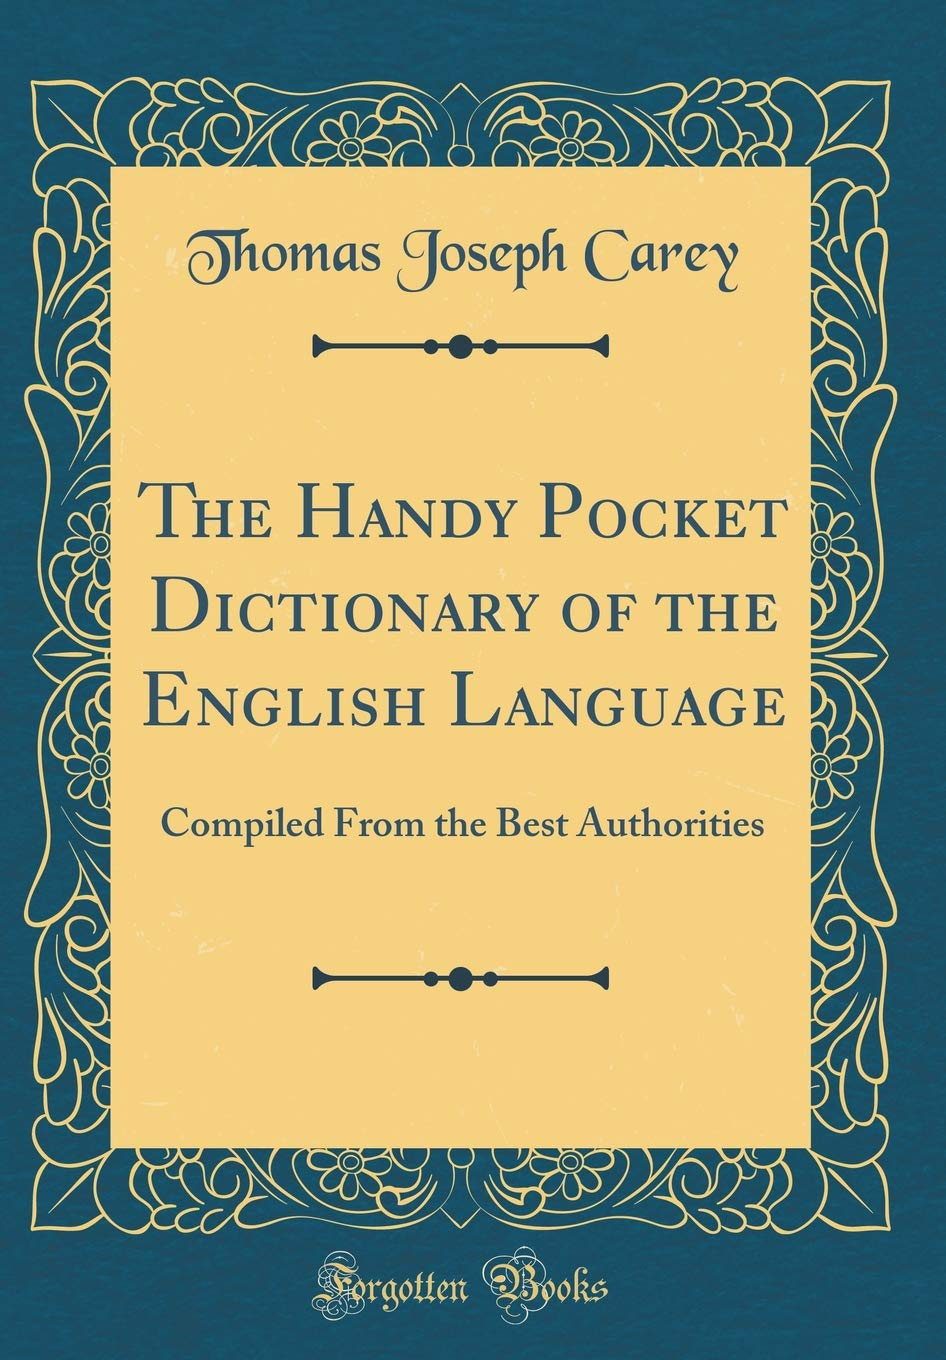 Download The Handy Pocket Dictionary of the English Language: Compiled From the Best Authorities (Classic Reprint) pdf